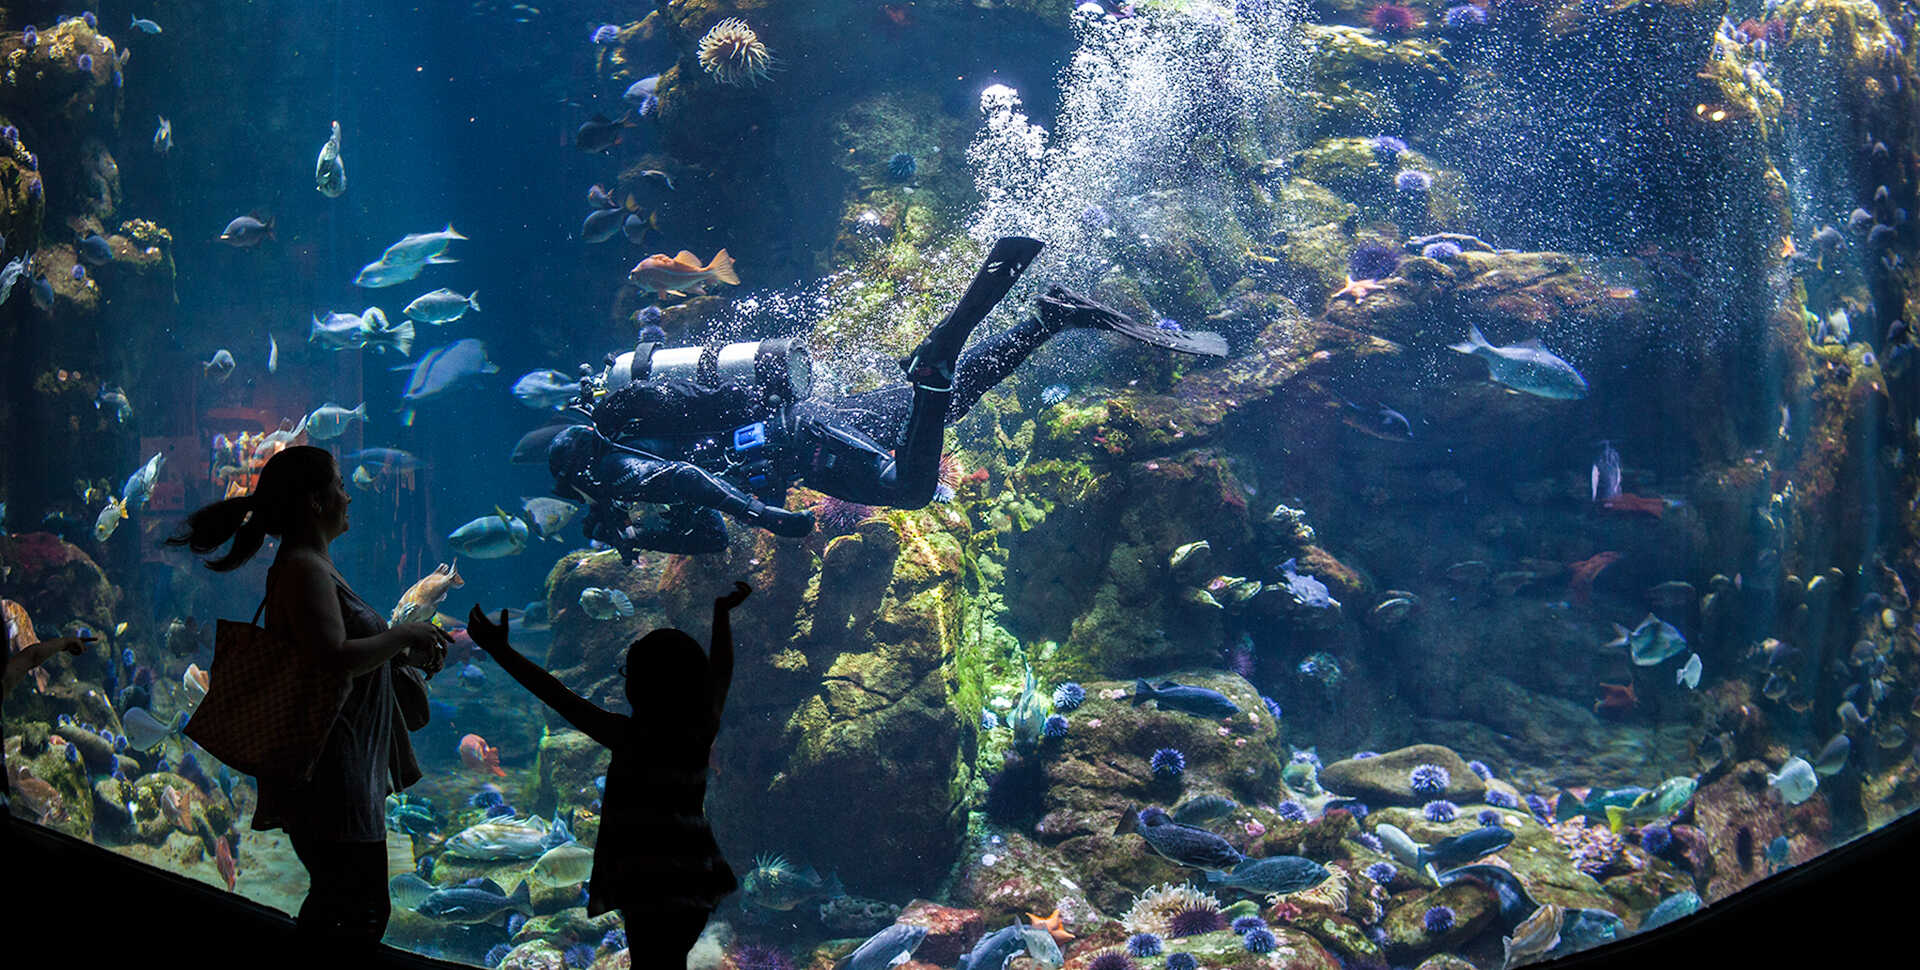 Explore the amazing richness and diversity found in California's coastal waters.